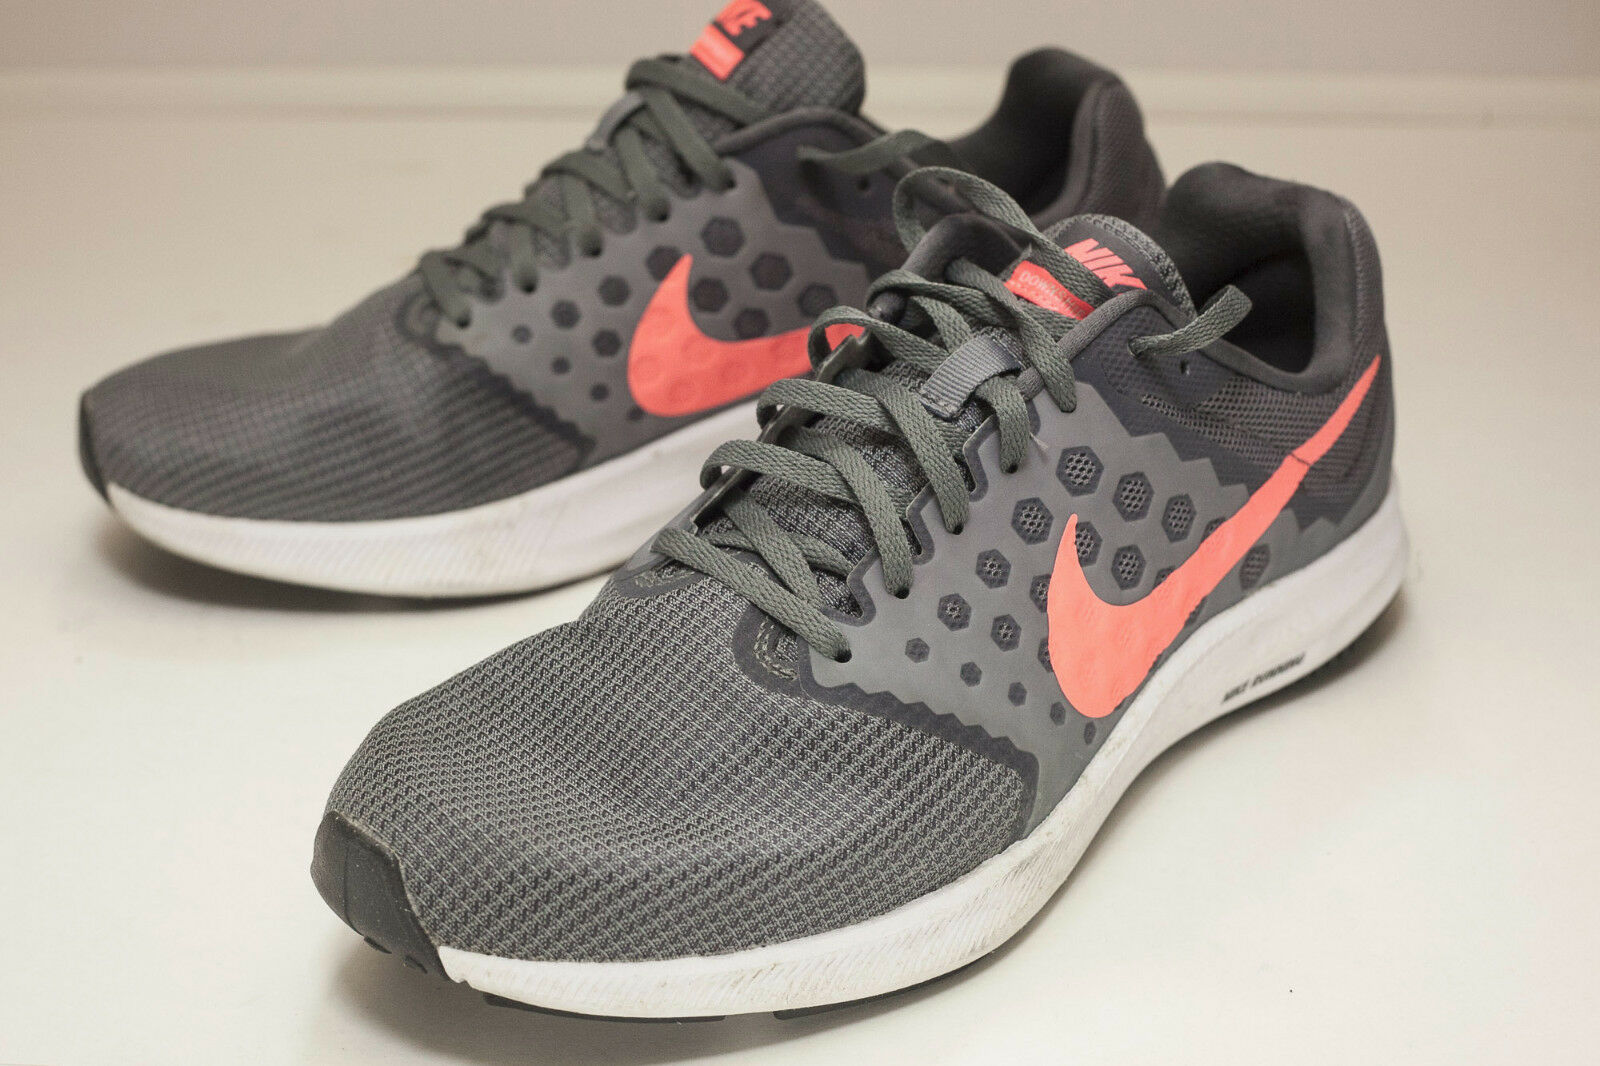 c41c5a1c75e7 Nike Downshifter 7 US 11 Grey Pink Running and 50 similar items